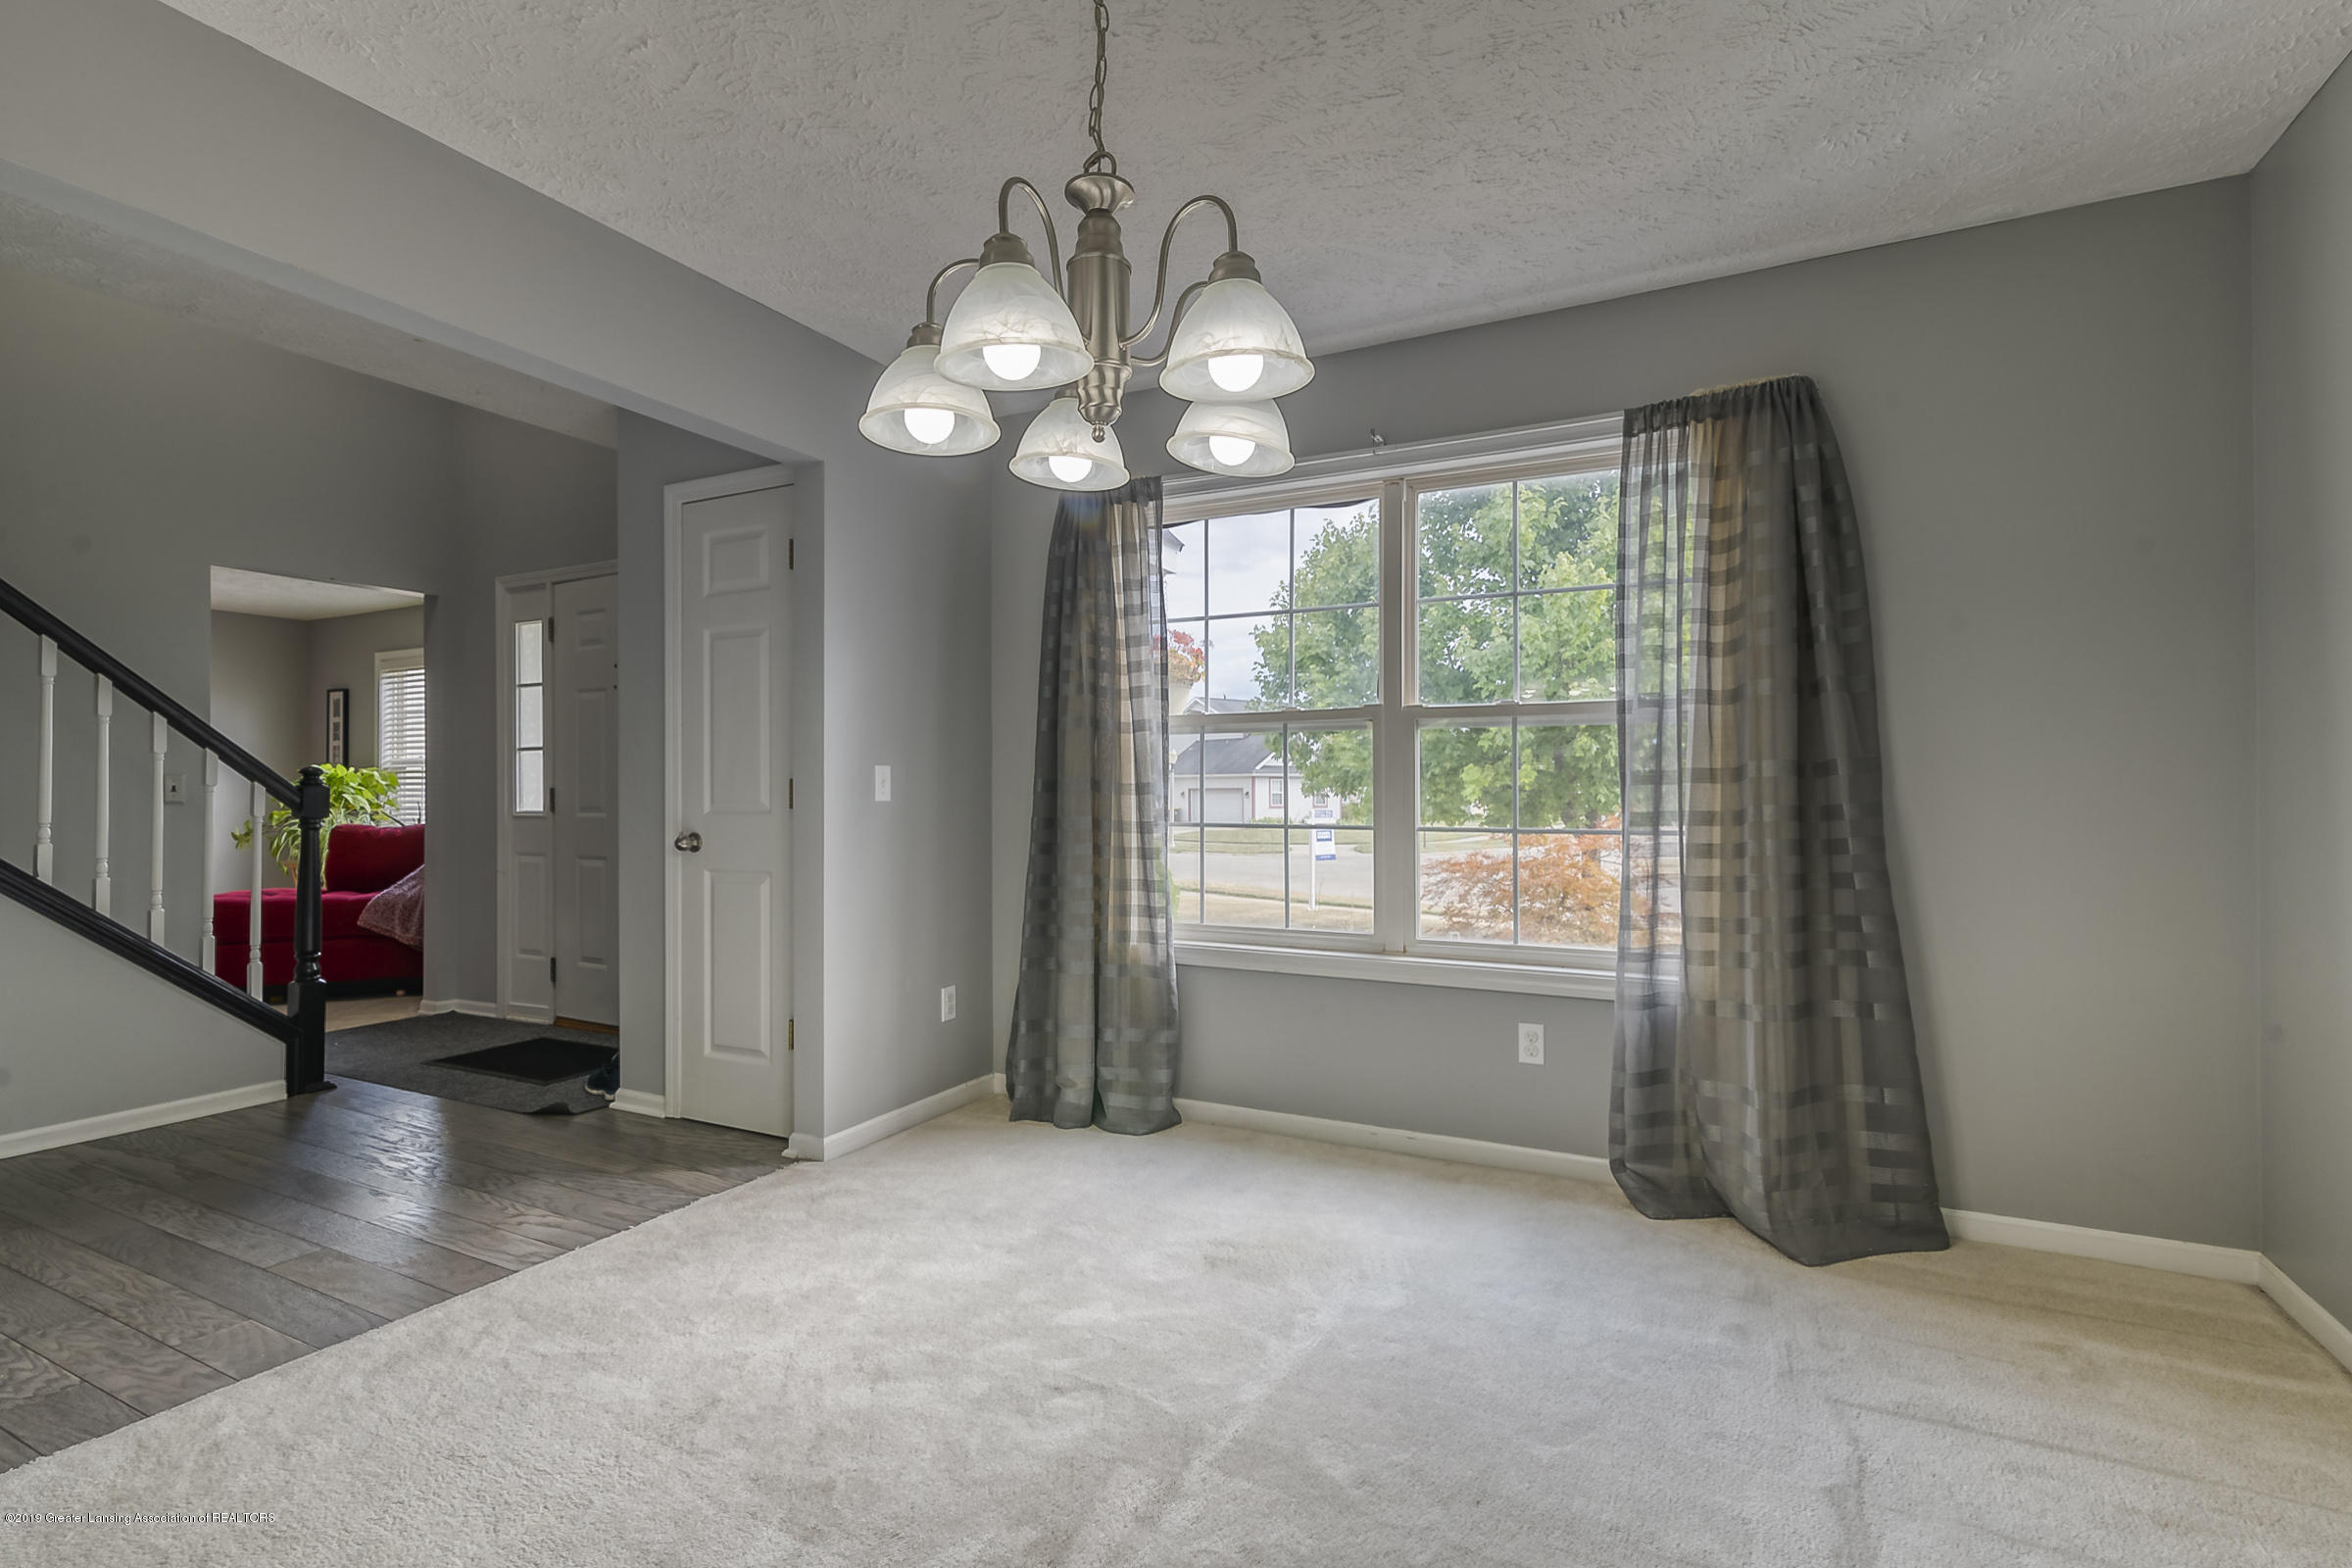 5712 Nightingale Dr - DINING ROOM - 2